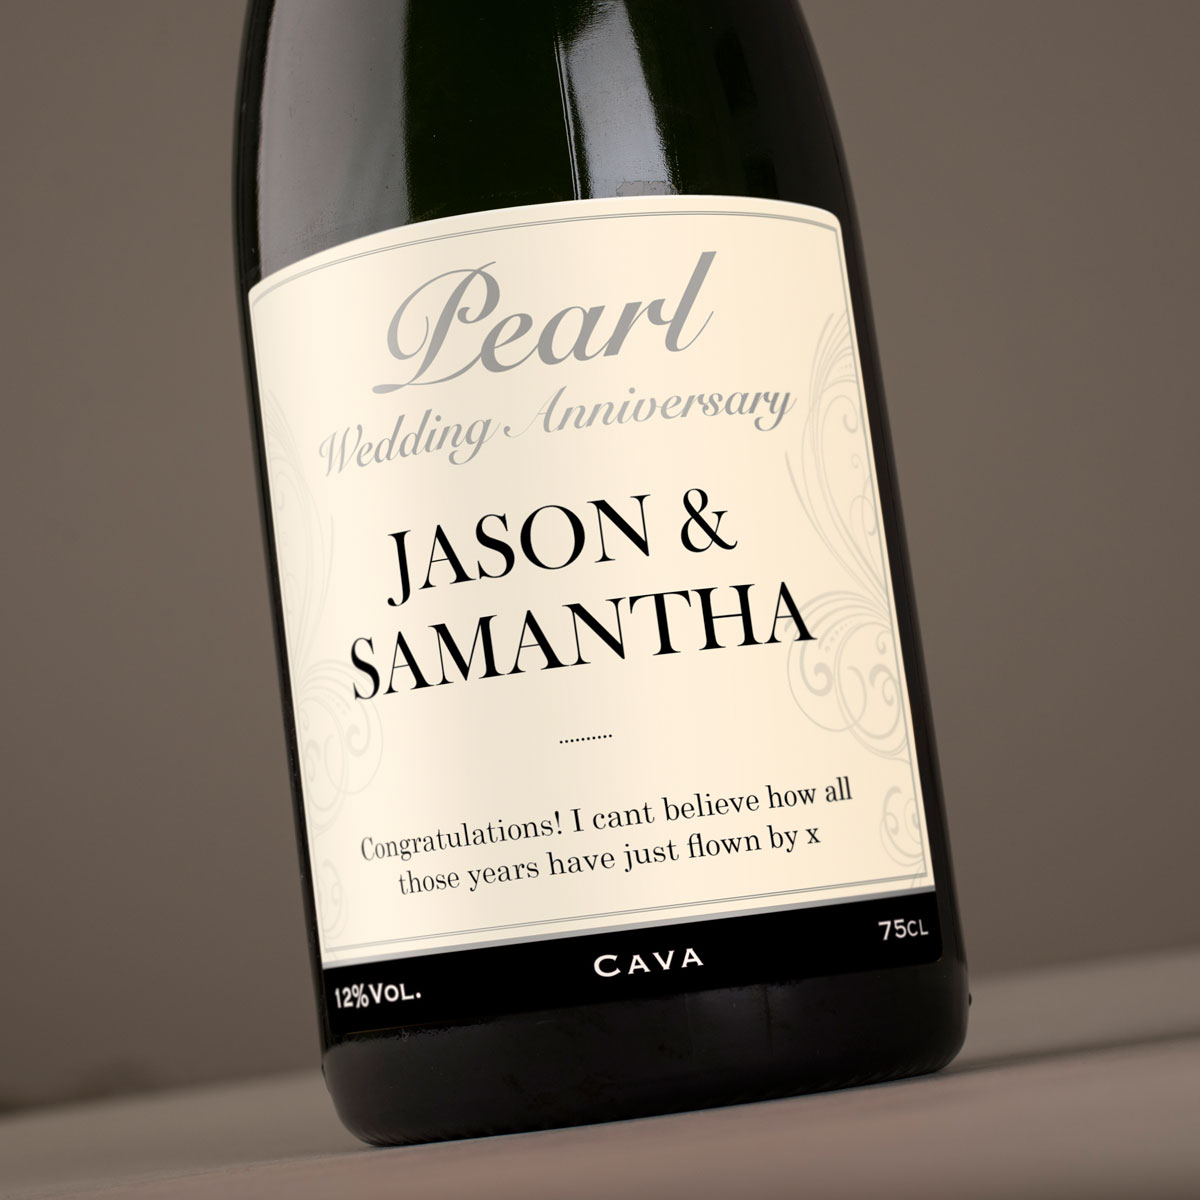 Wedding Gifts Next Day Delivery: Personalised Cava - Pearl Anniversary